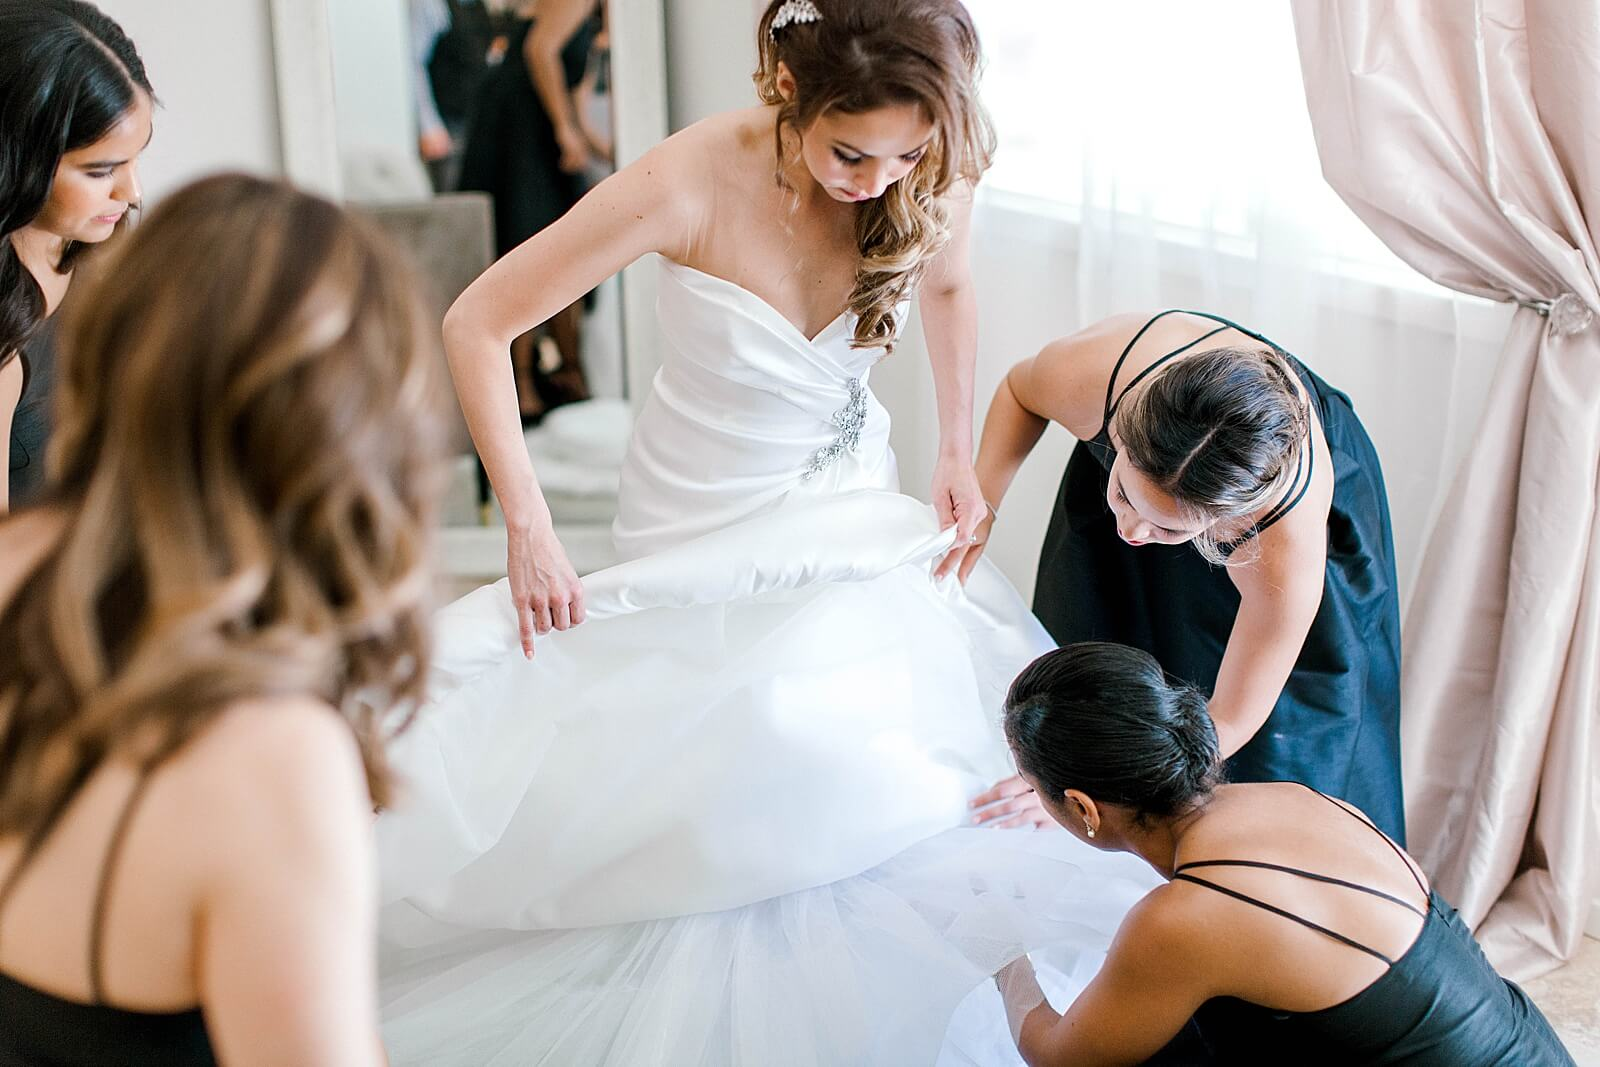 Bridesmaids help bride put on shoes before wedding at The Annex wedding venue near College Station